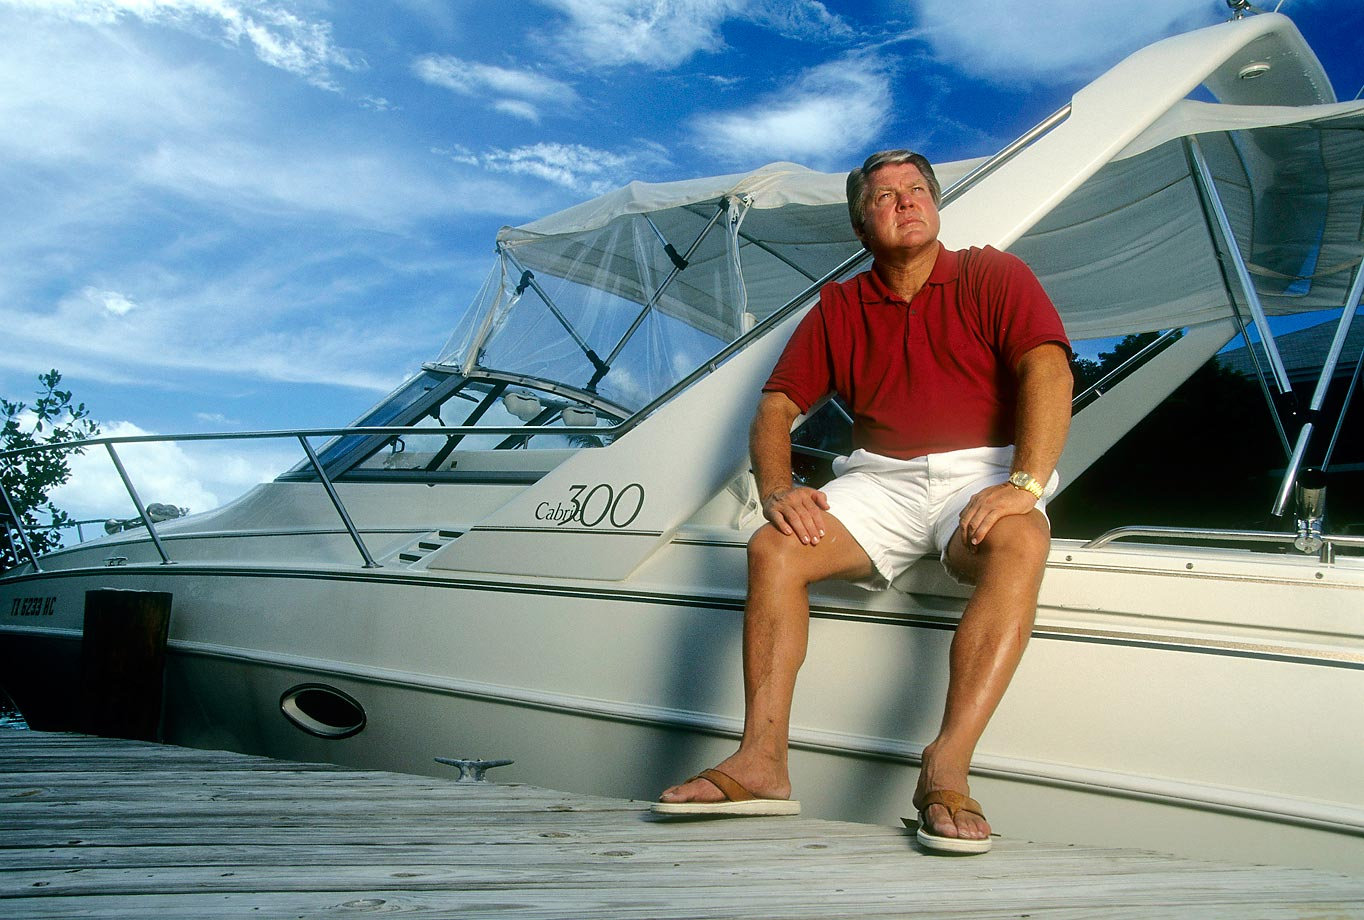 After two years as a TV analyst, Jimmy Johnson returned to coaching with the Miami Dolphins in 1996. In this photo taken that year, Johnson sits on his boat.